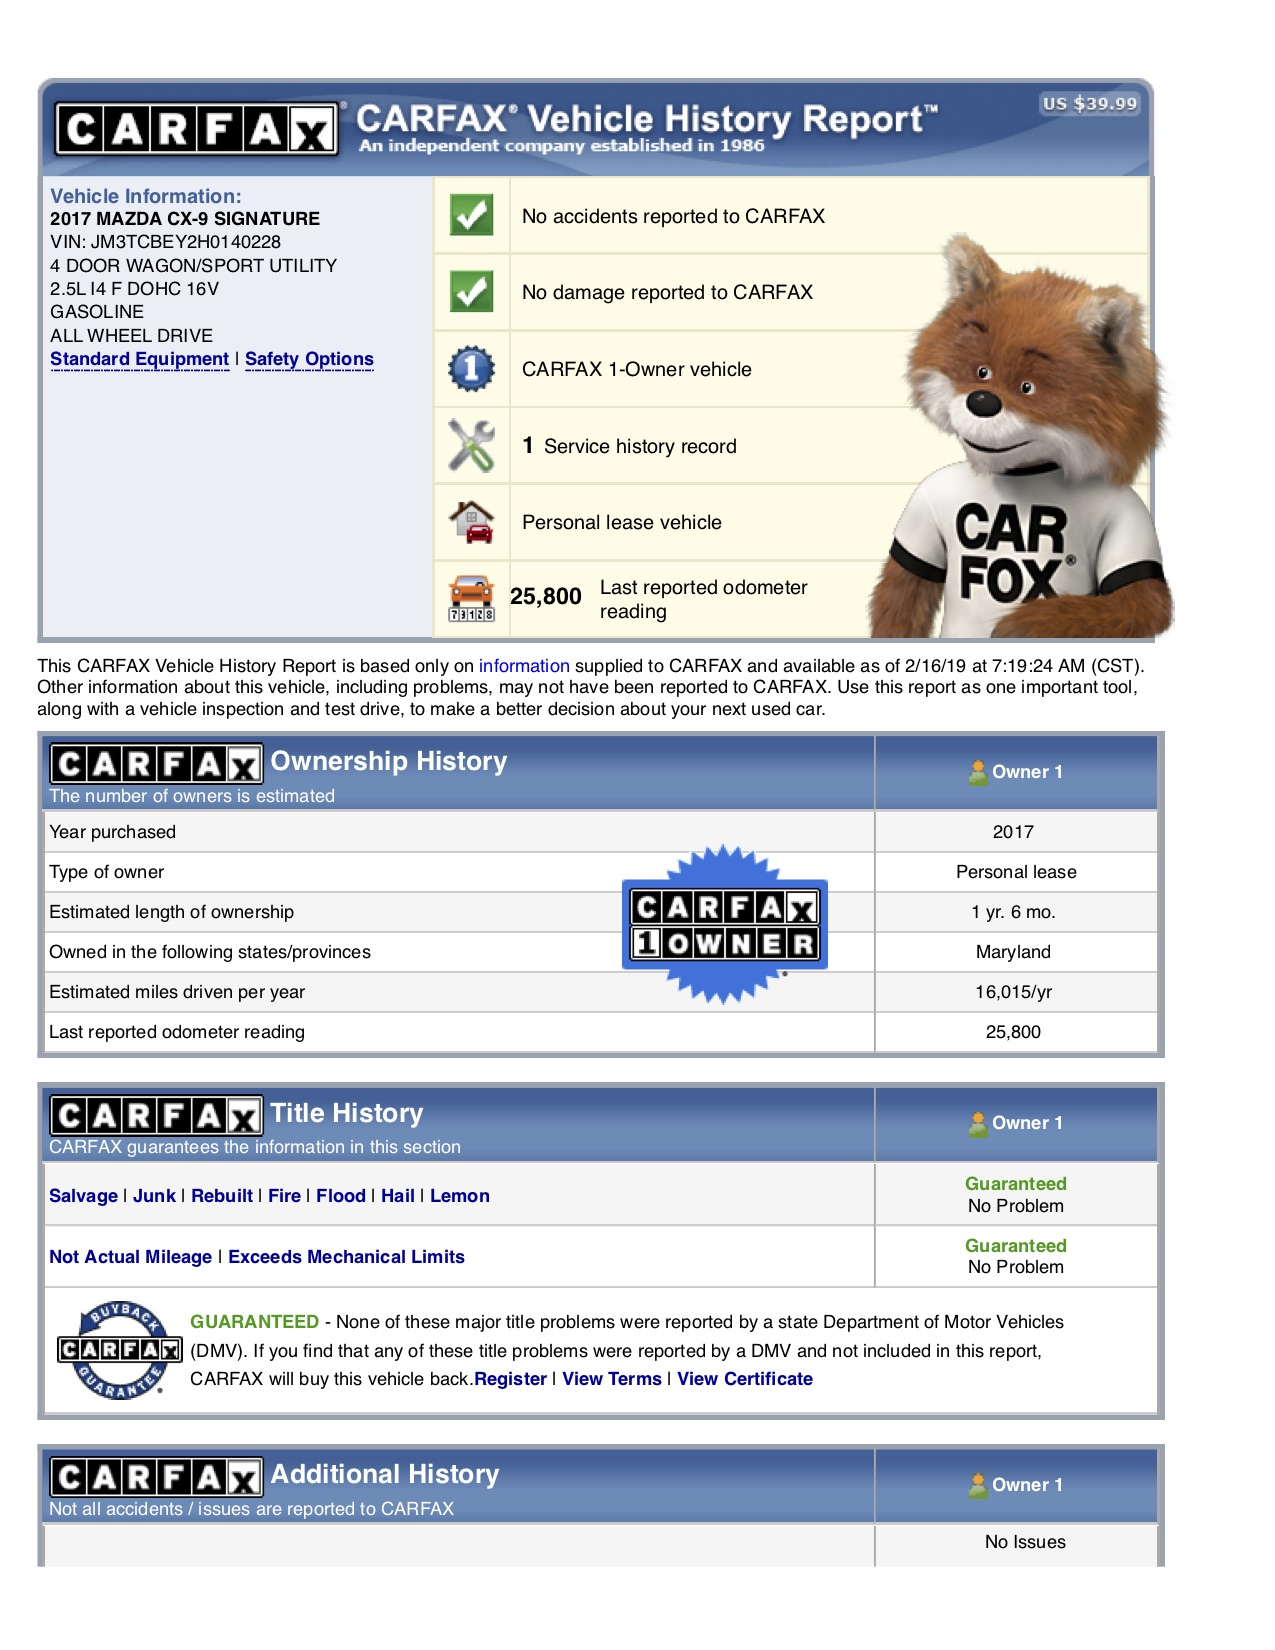 Carfax Vehicle History Report Best Of Can Anyone Run A Carfax for Me